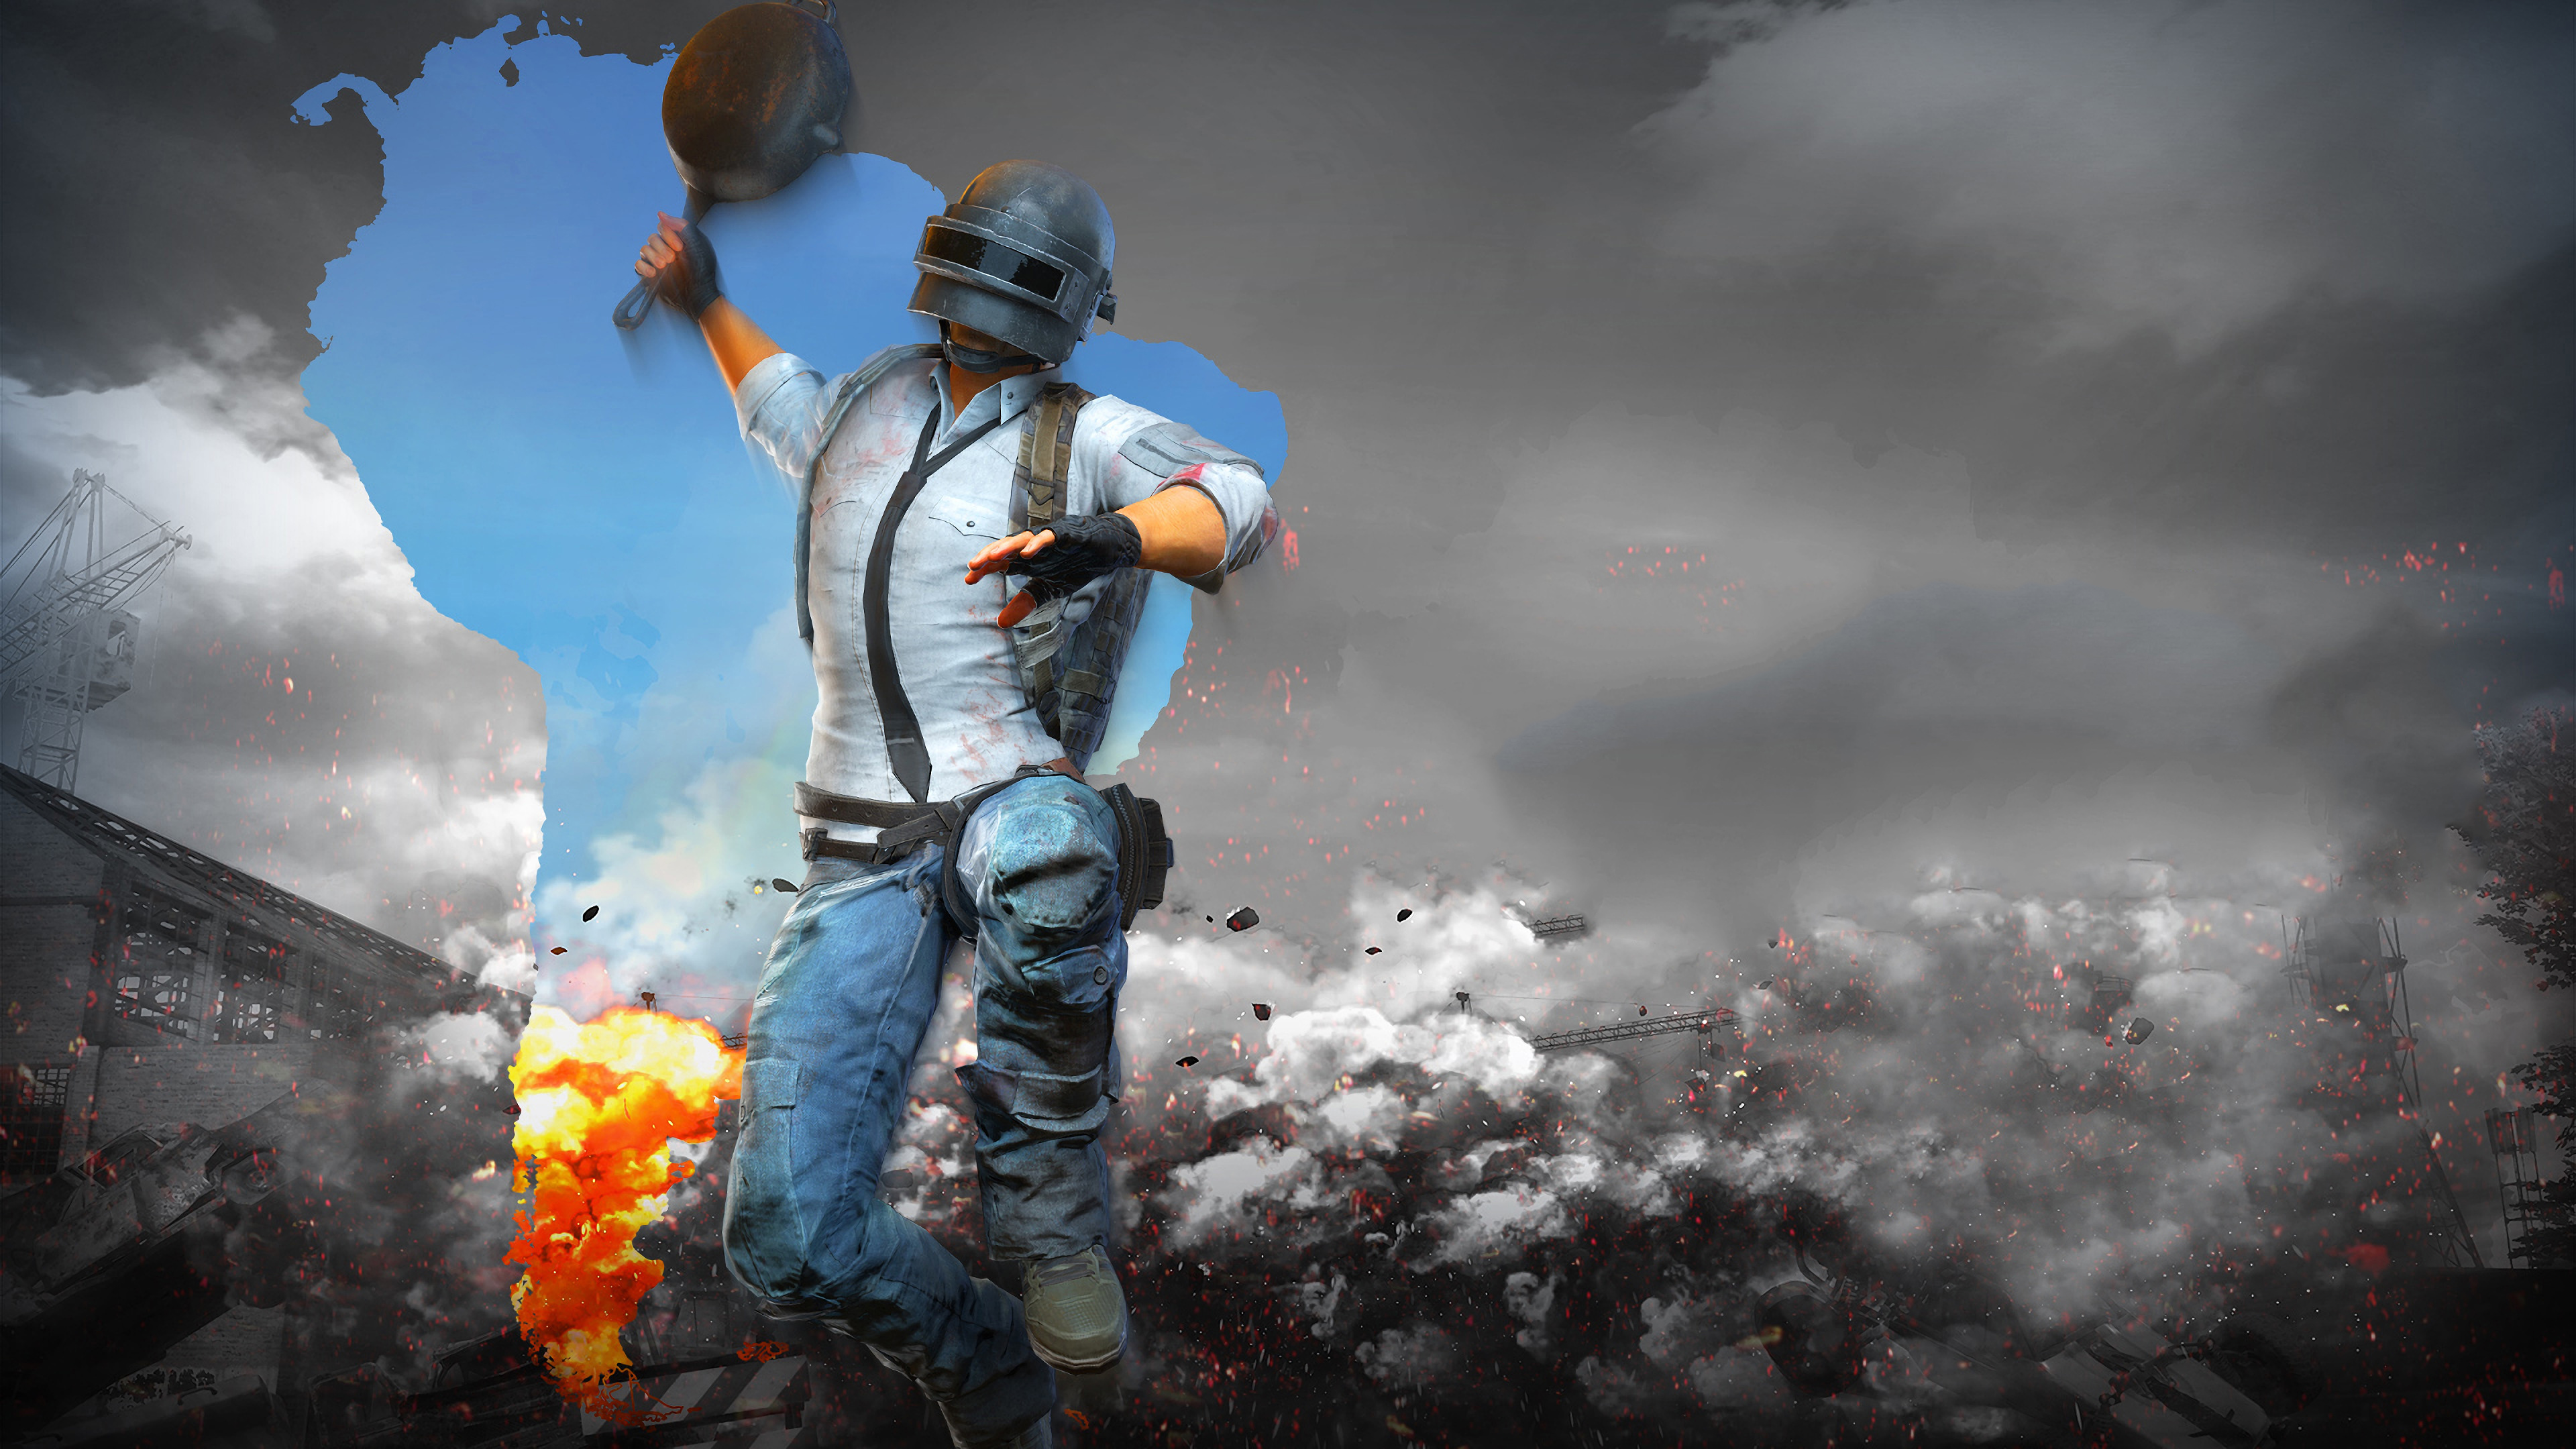 Hd Gaming Wallpapers 4k Hd Wallpapers Hd Gaming: PUBG Helmet Man With Pan 4k, HD Games, 4k Wallpapers